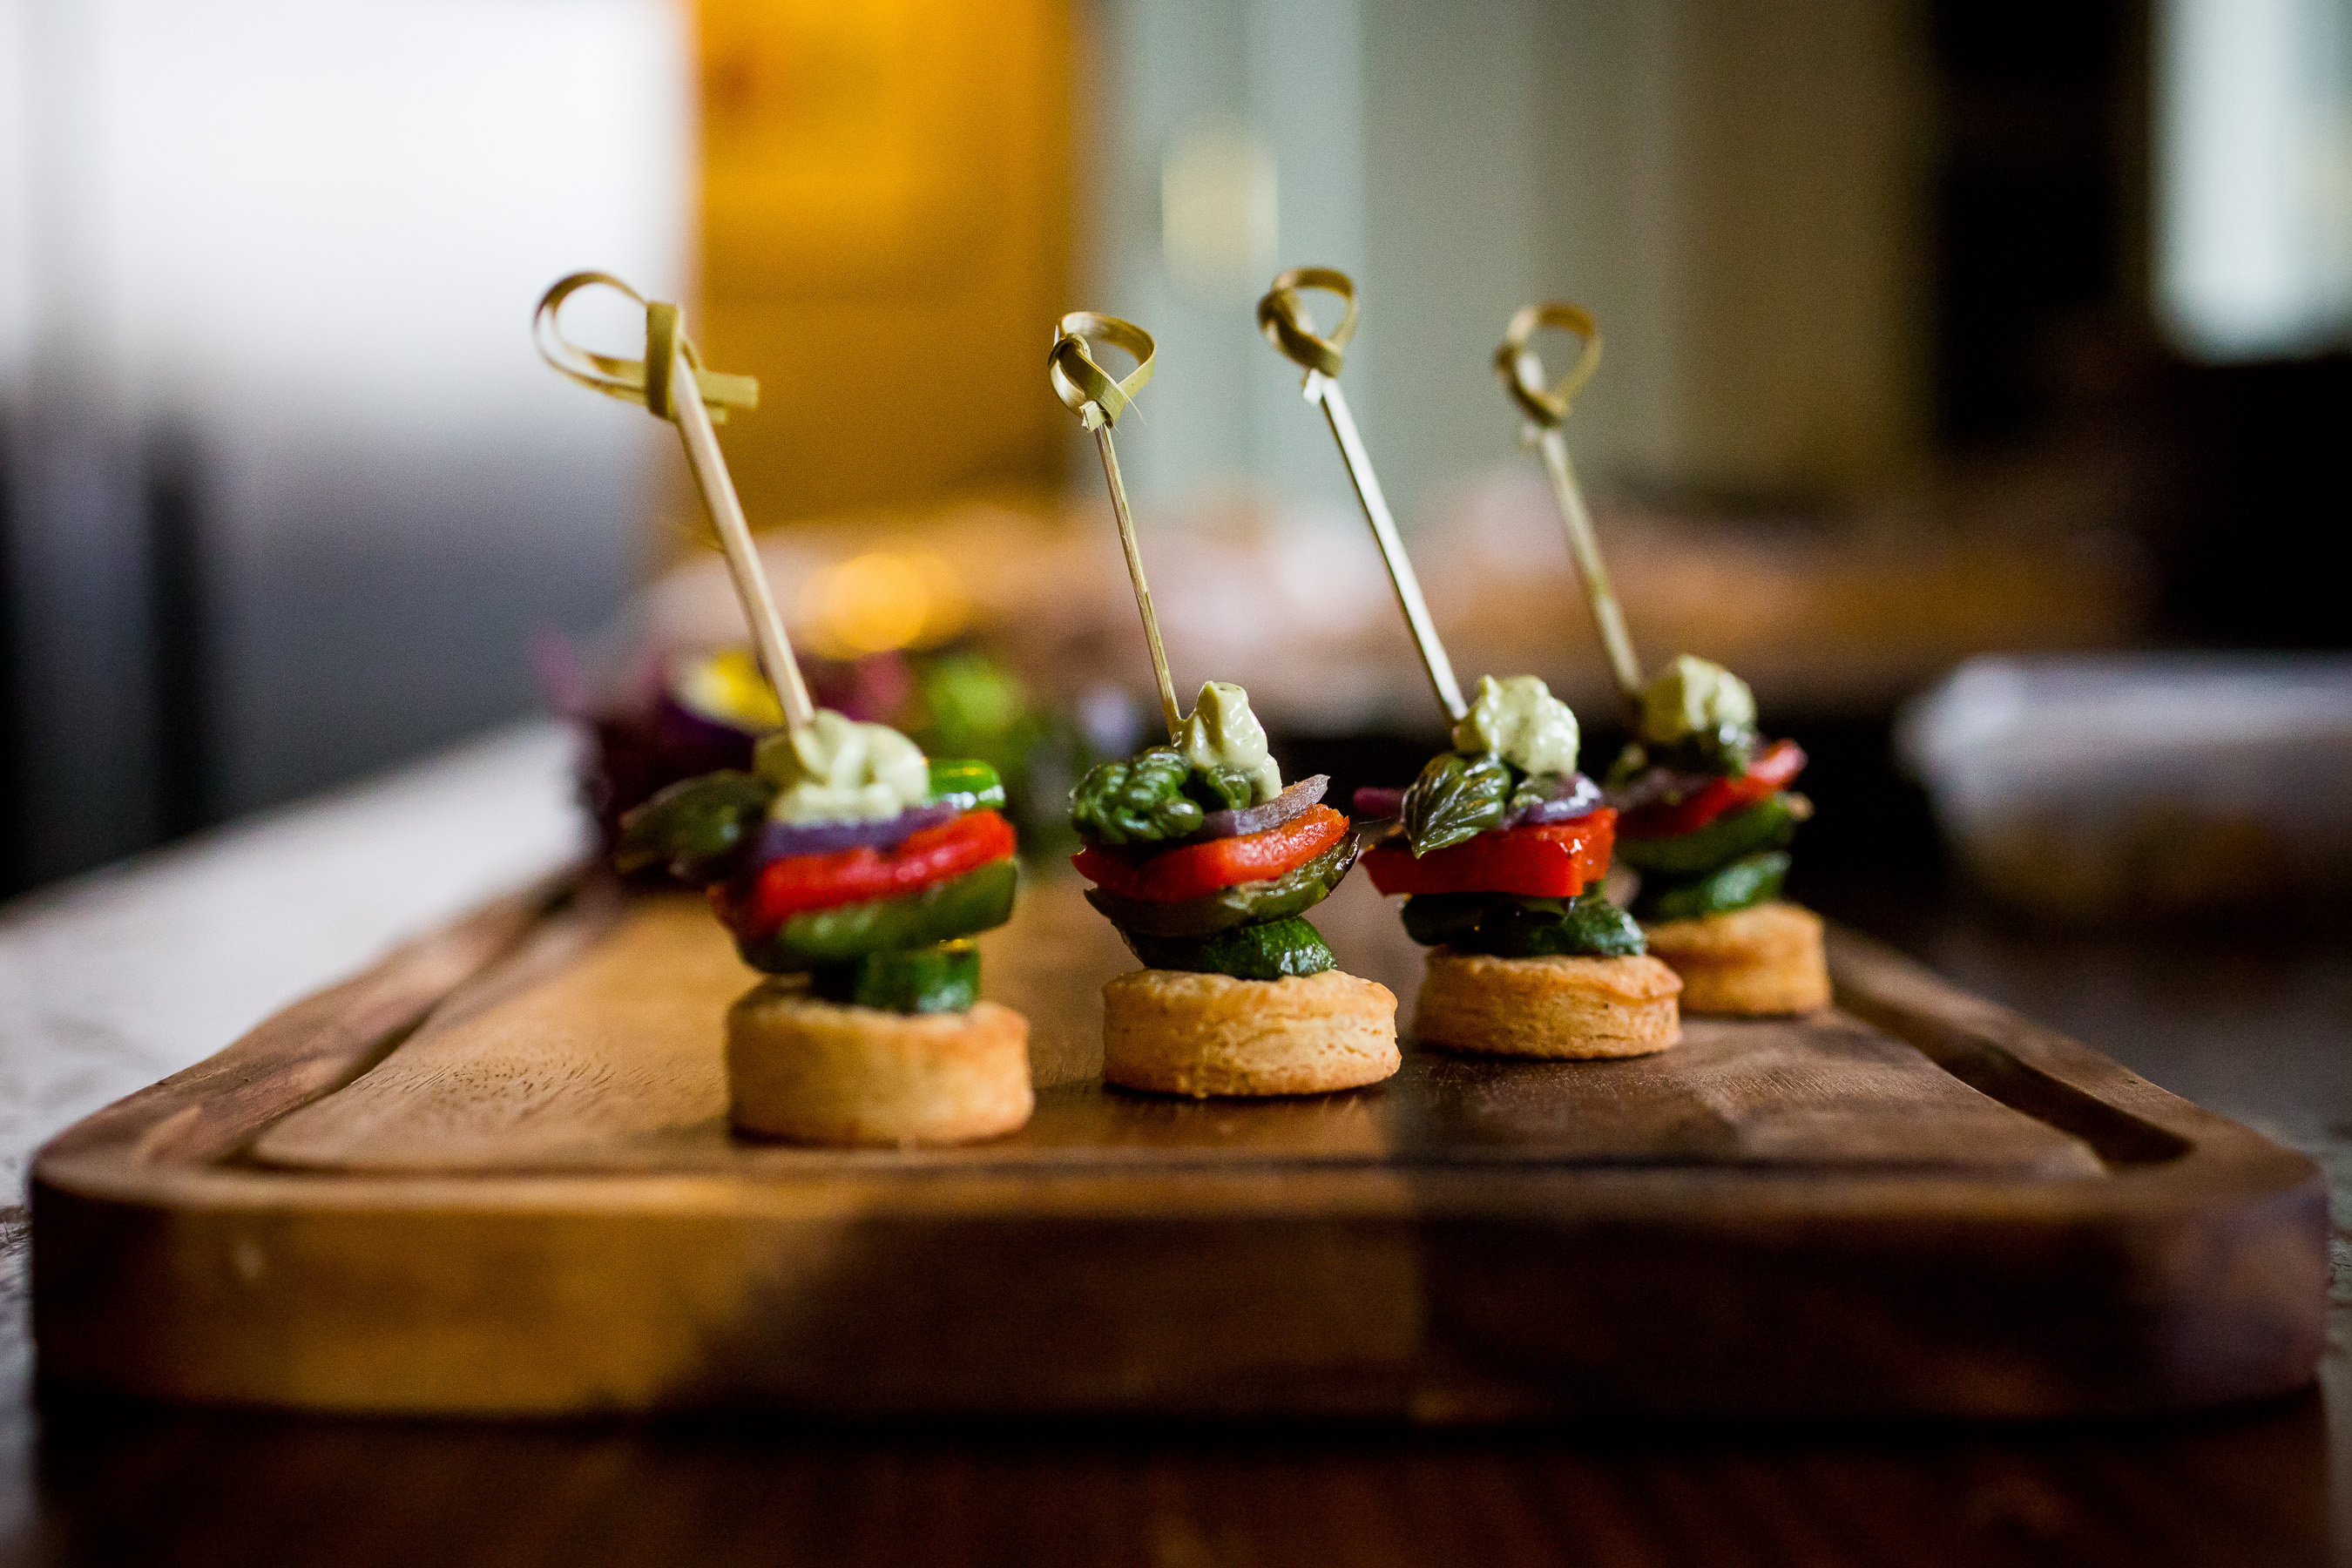 canapes on a wooden board